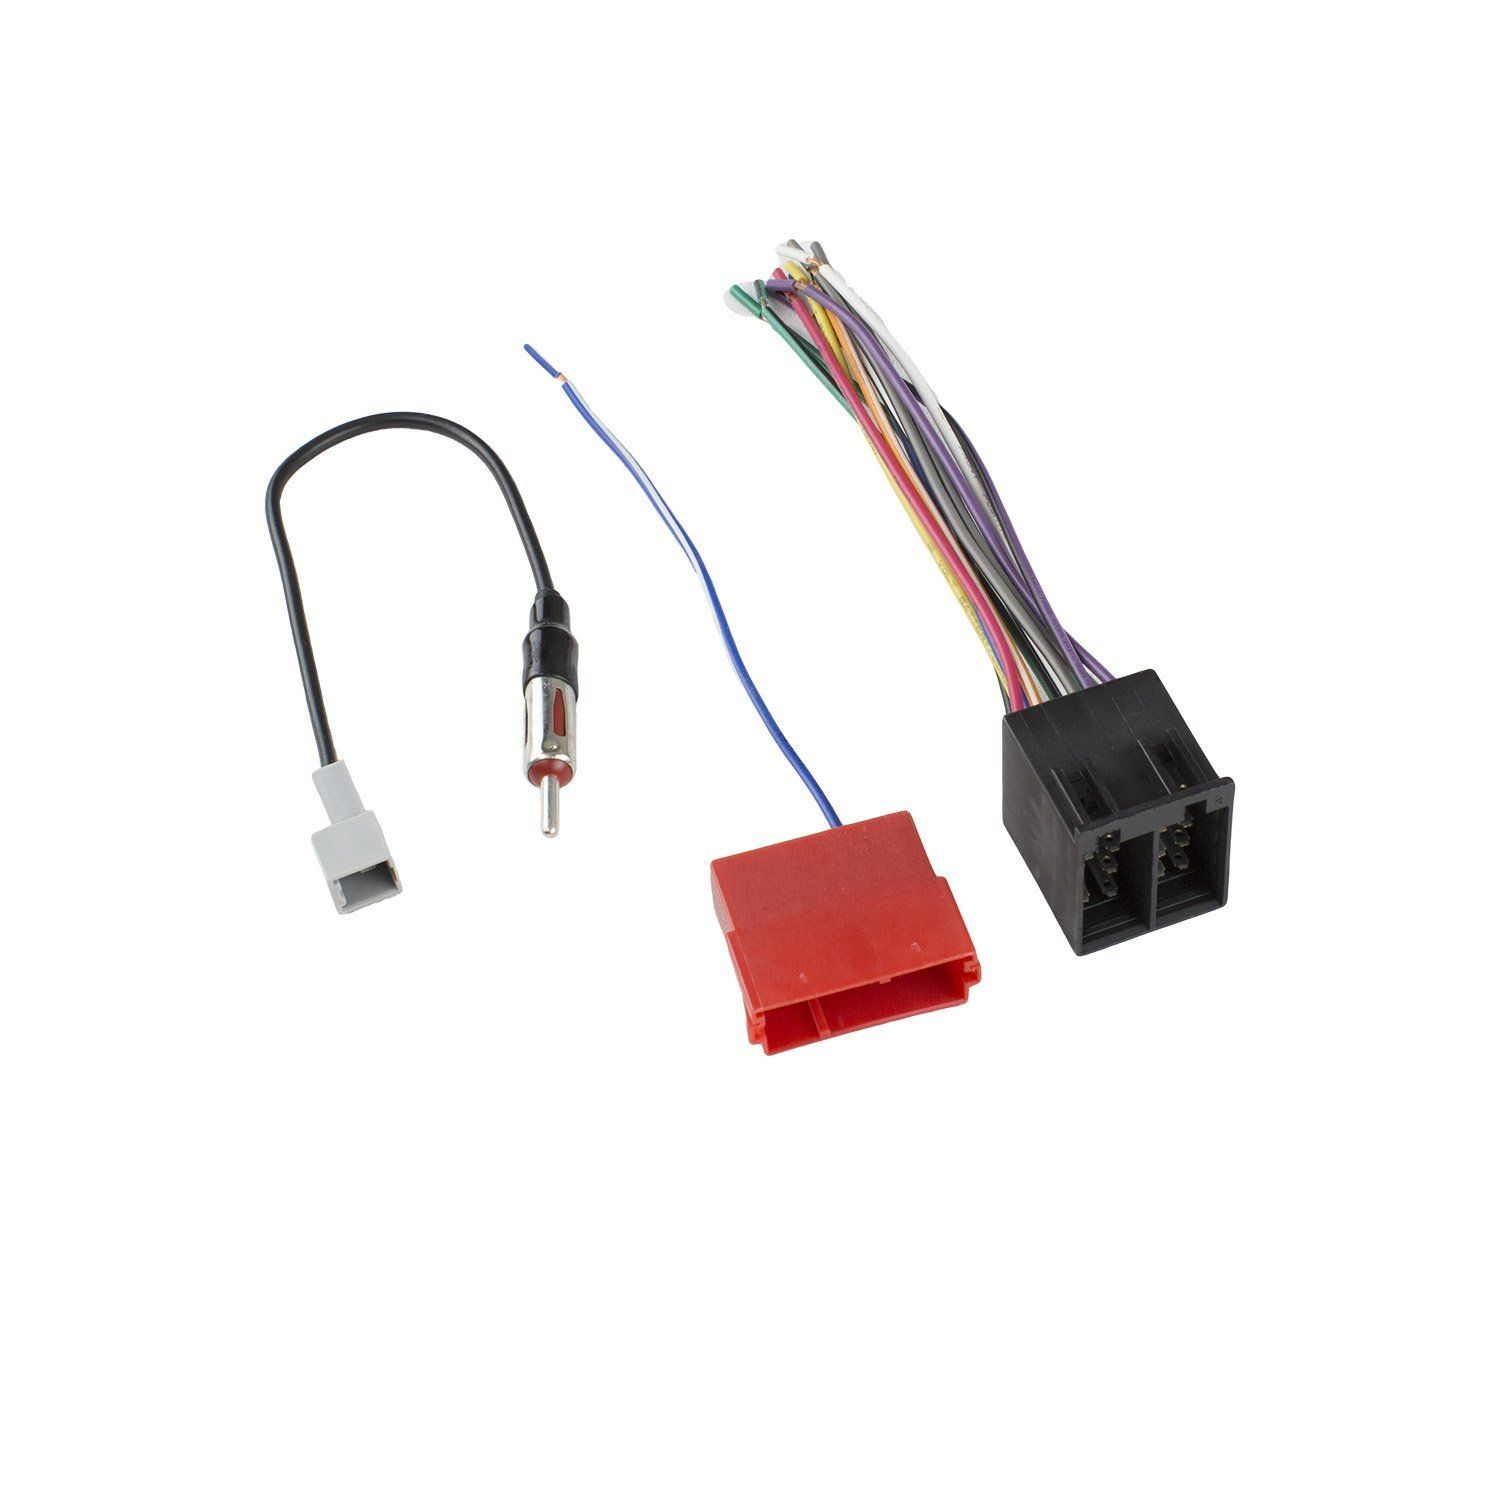 small resolution of novosonics hif 1110 hk6 wiring harness for hyundai elantra 2008 2010 car stereo includes hk6 antenna adapter fits existing connector in your vehicle